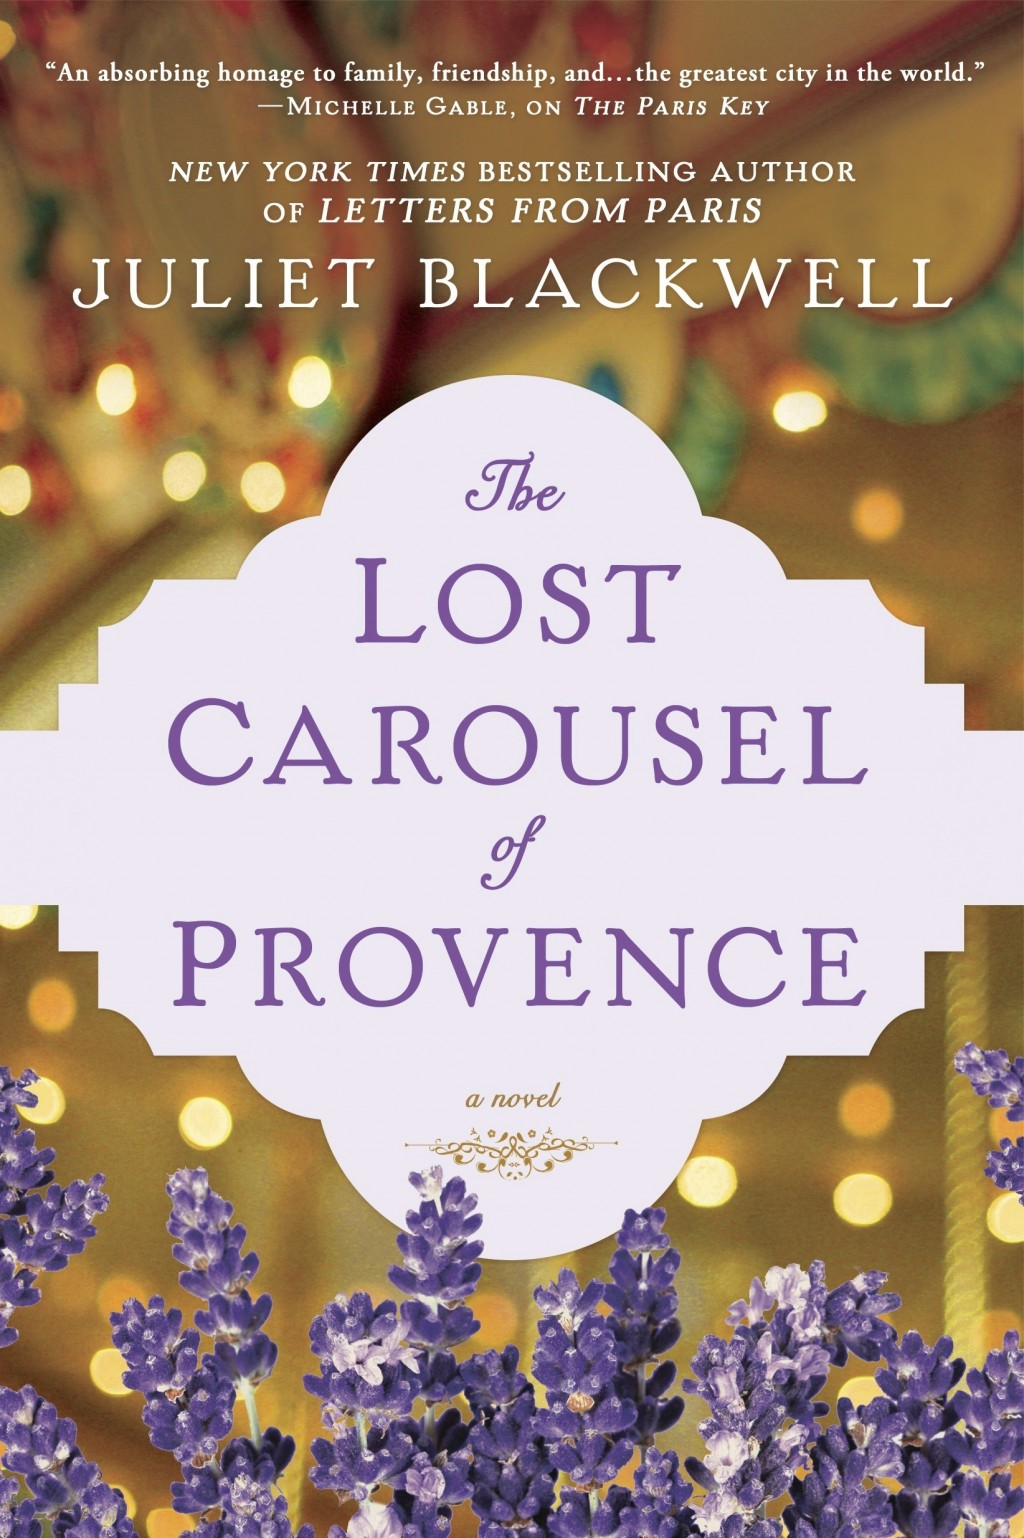 """This cover image released by Berkley shows """"The Lost Carousel of Provence,"""" a novel by Juliet Blackwell. (Berkley via AP)"""